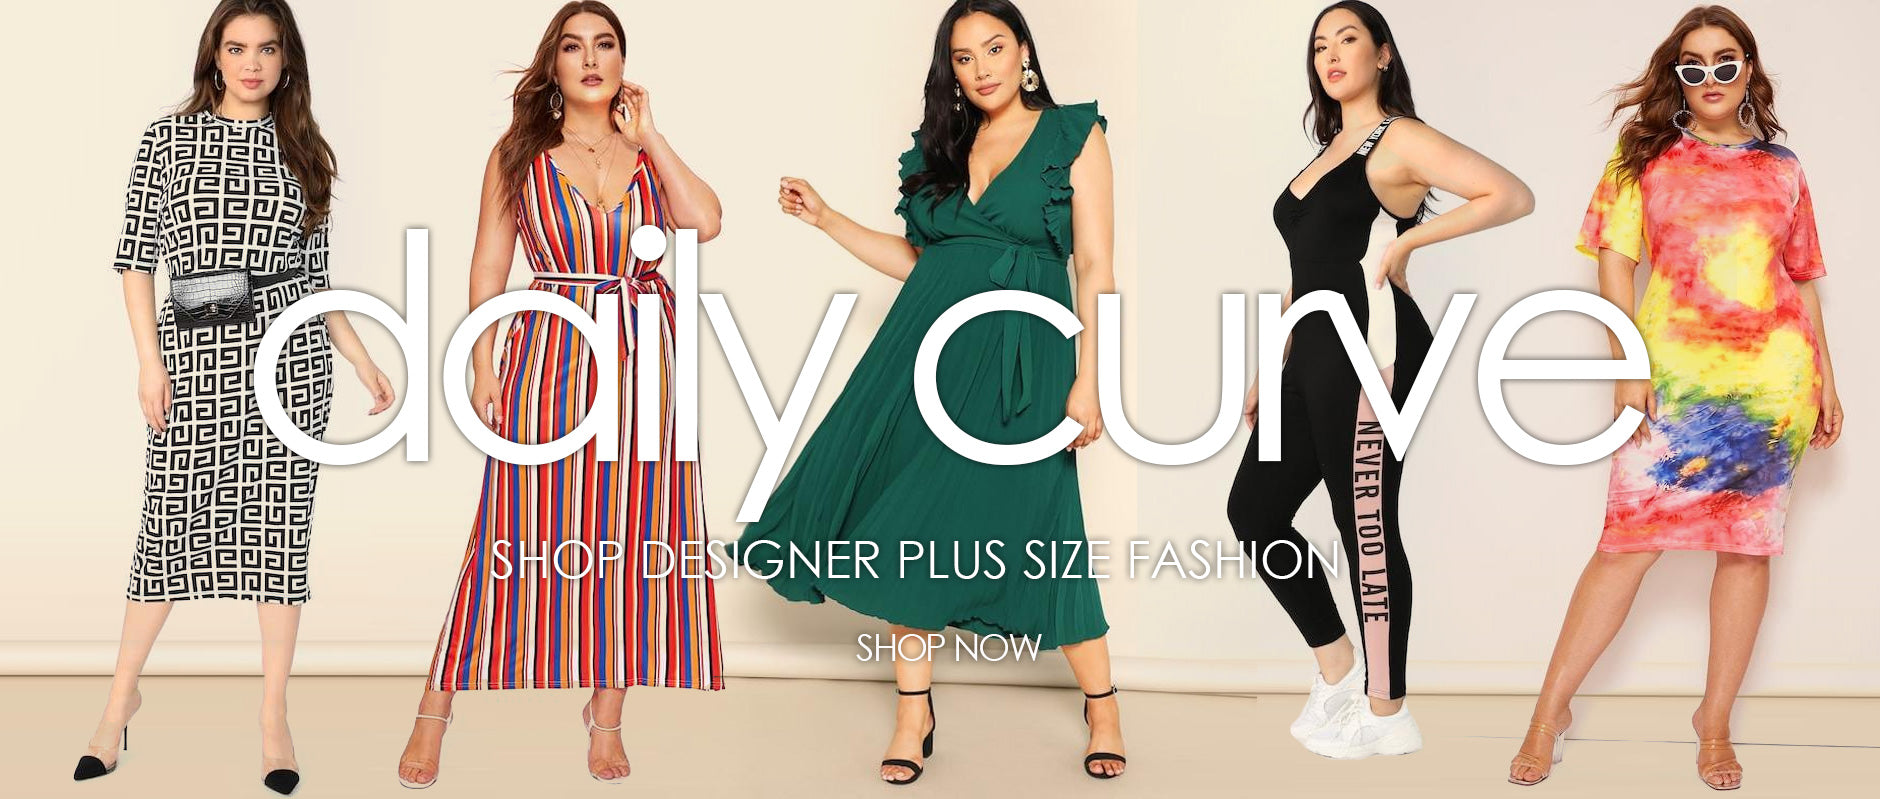 ff7e6706ac3 Welcome to Plussizefix - Shop Plus Size Clothing